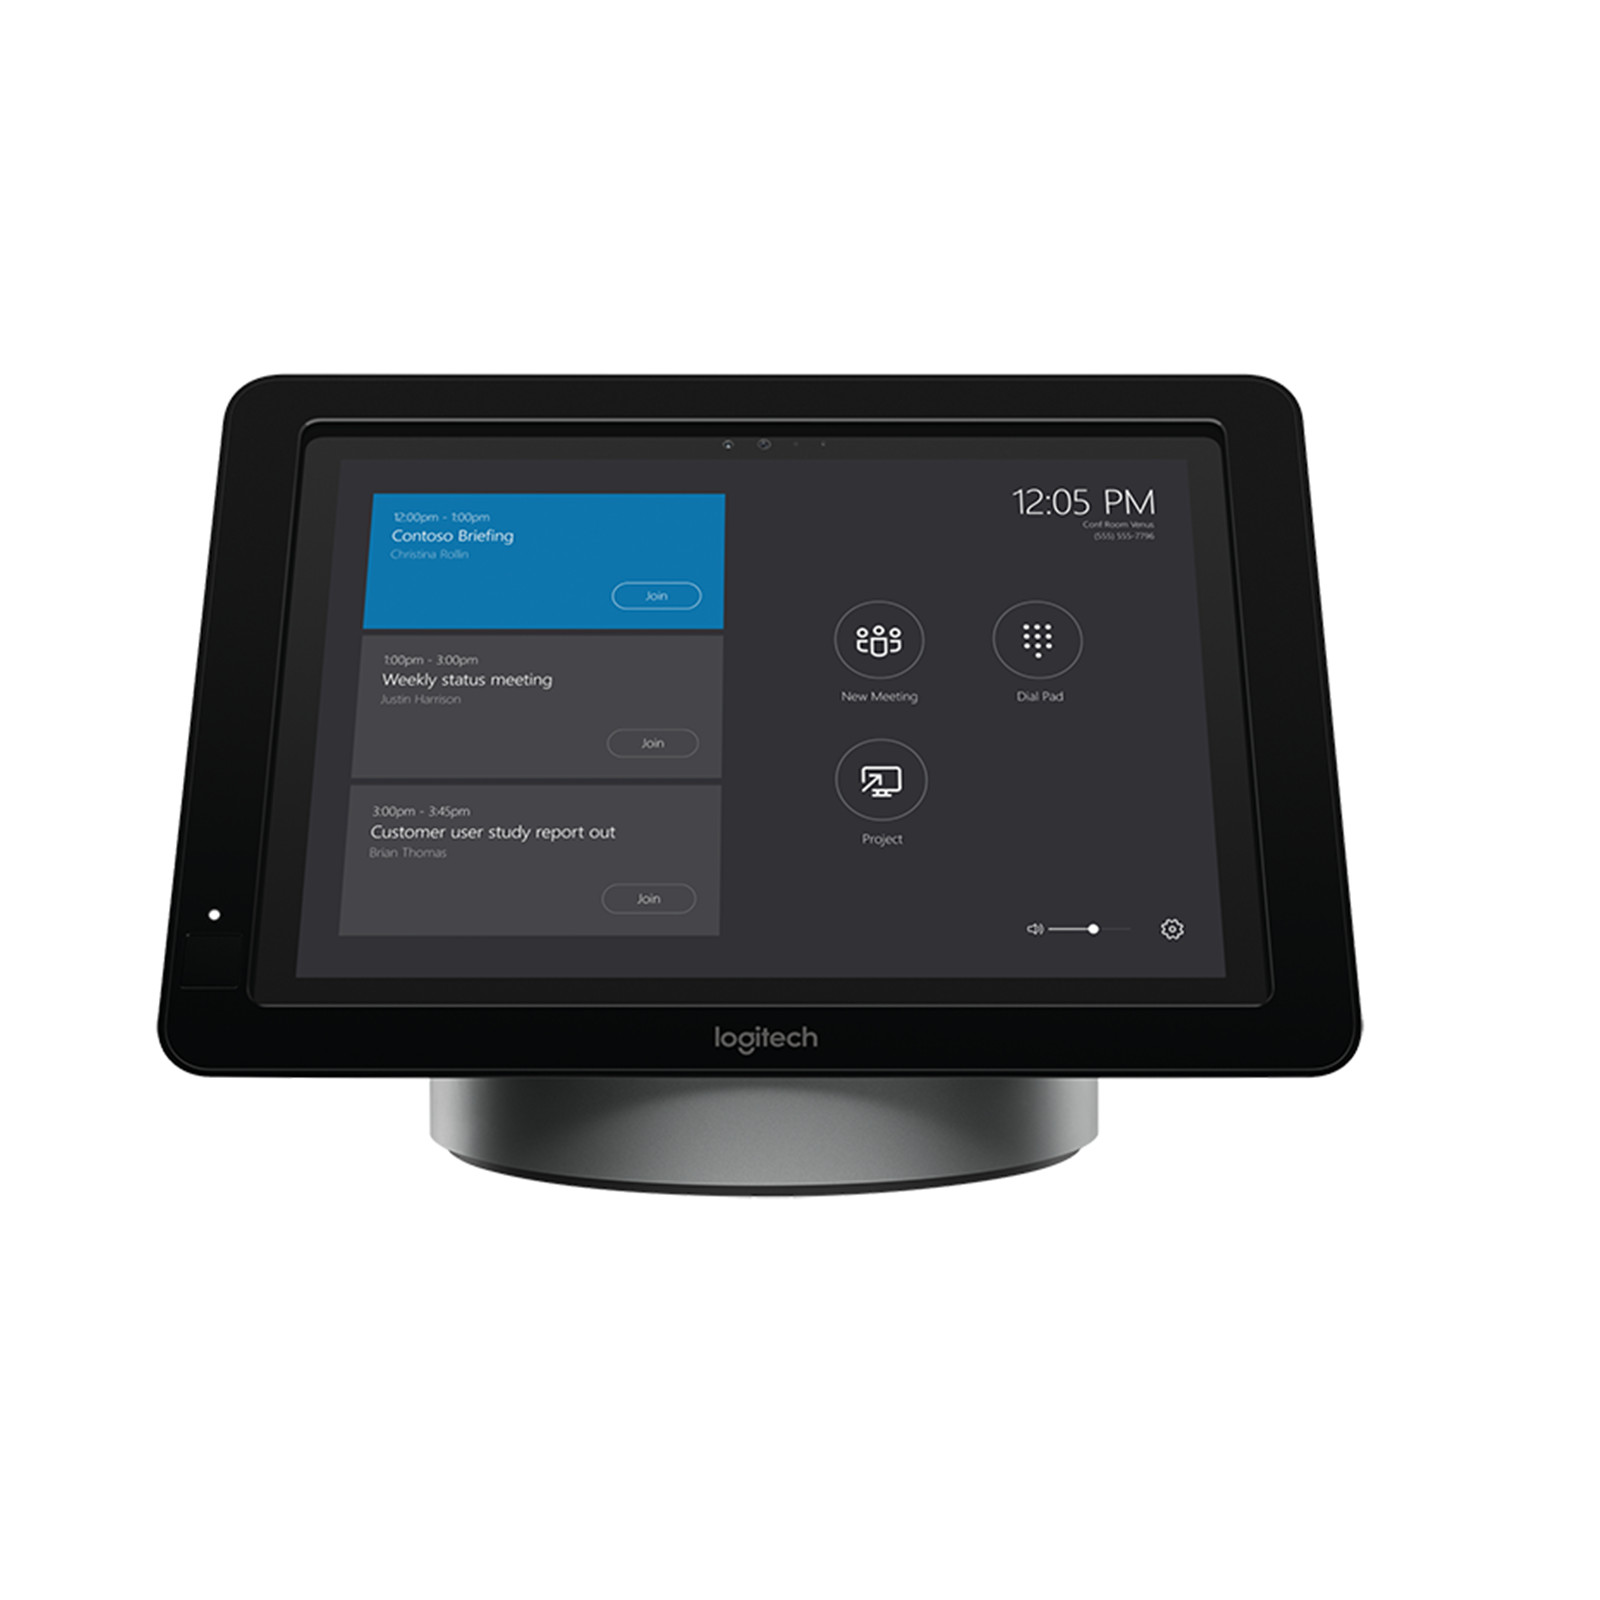 81d8b8ad157 Logitech Conference Cam Smart Dock , Dock Only, An i5 model Surface Pro 4  or Surface Pro 2017, Windows 10 Enterprise License are required - sold  separately